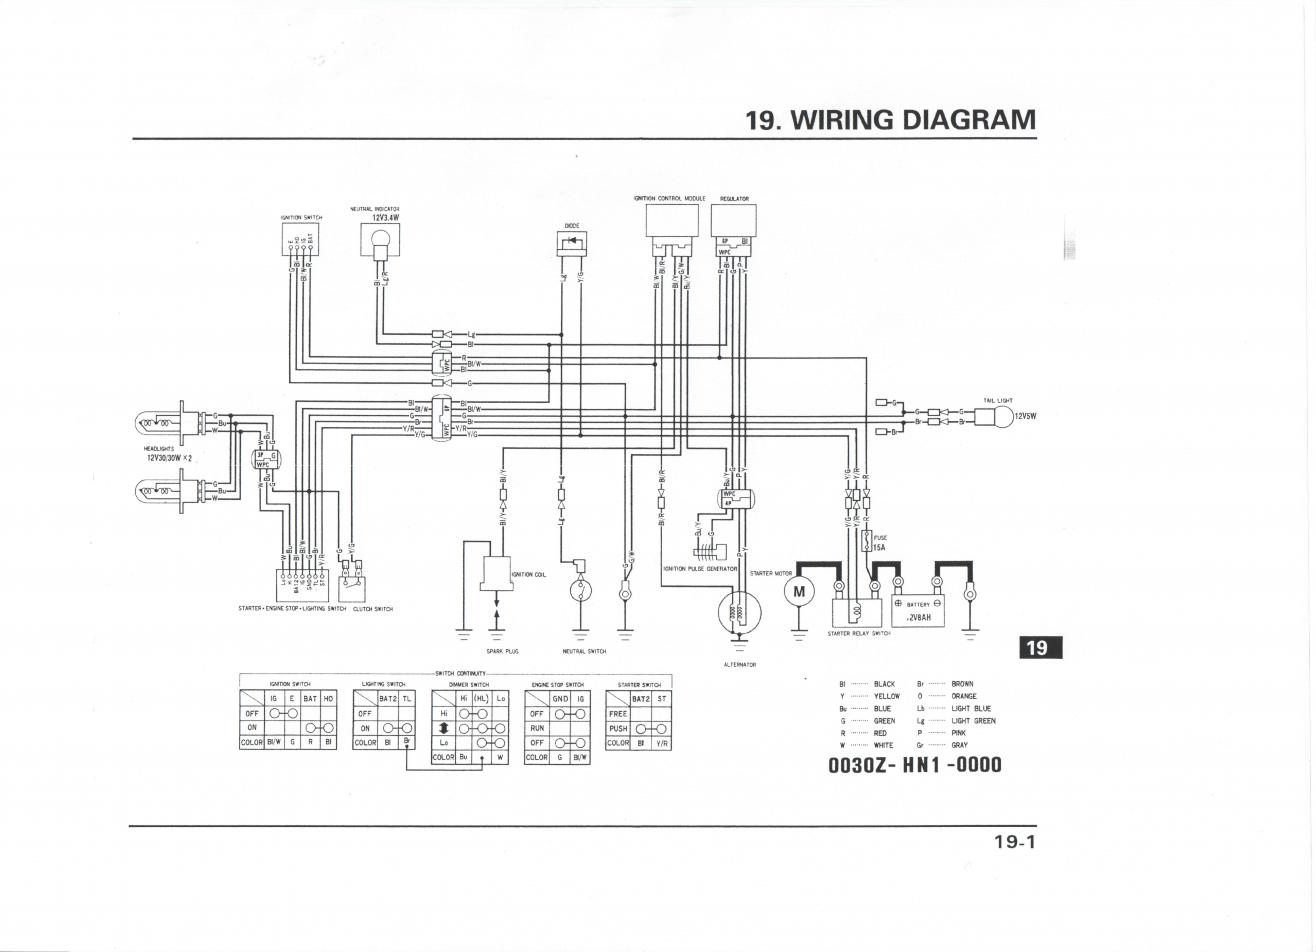 hight resolution of 400ex wiring diagram wiring diagram expert honda 400ex engine diagram 01 400ex engine diagram